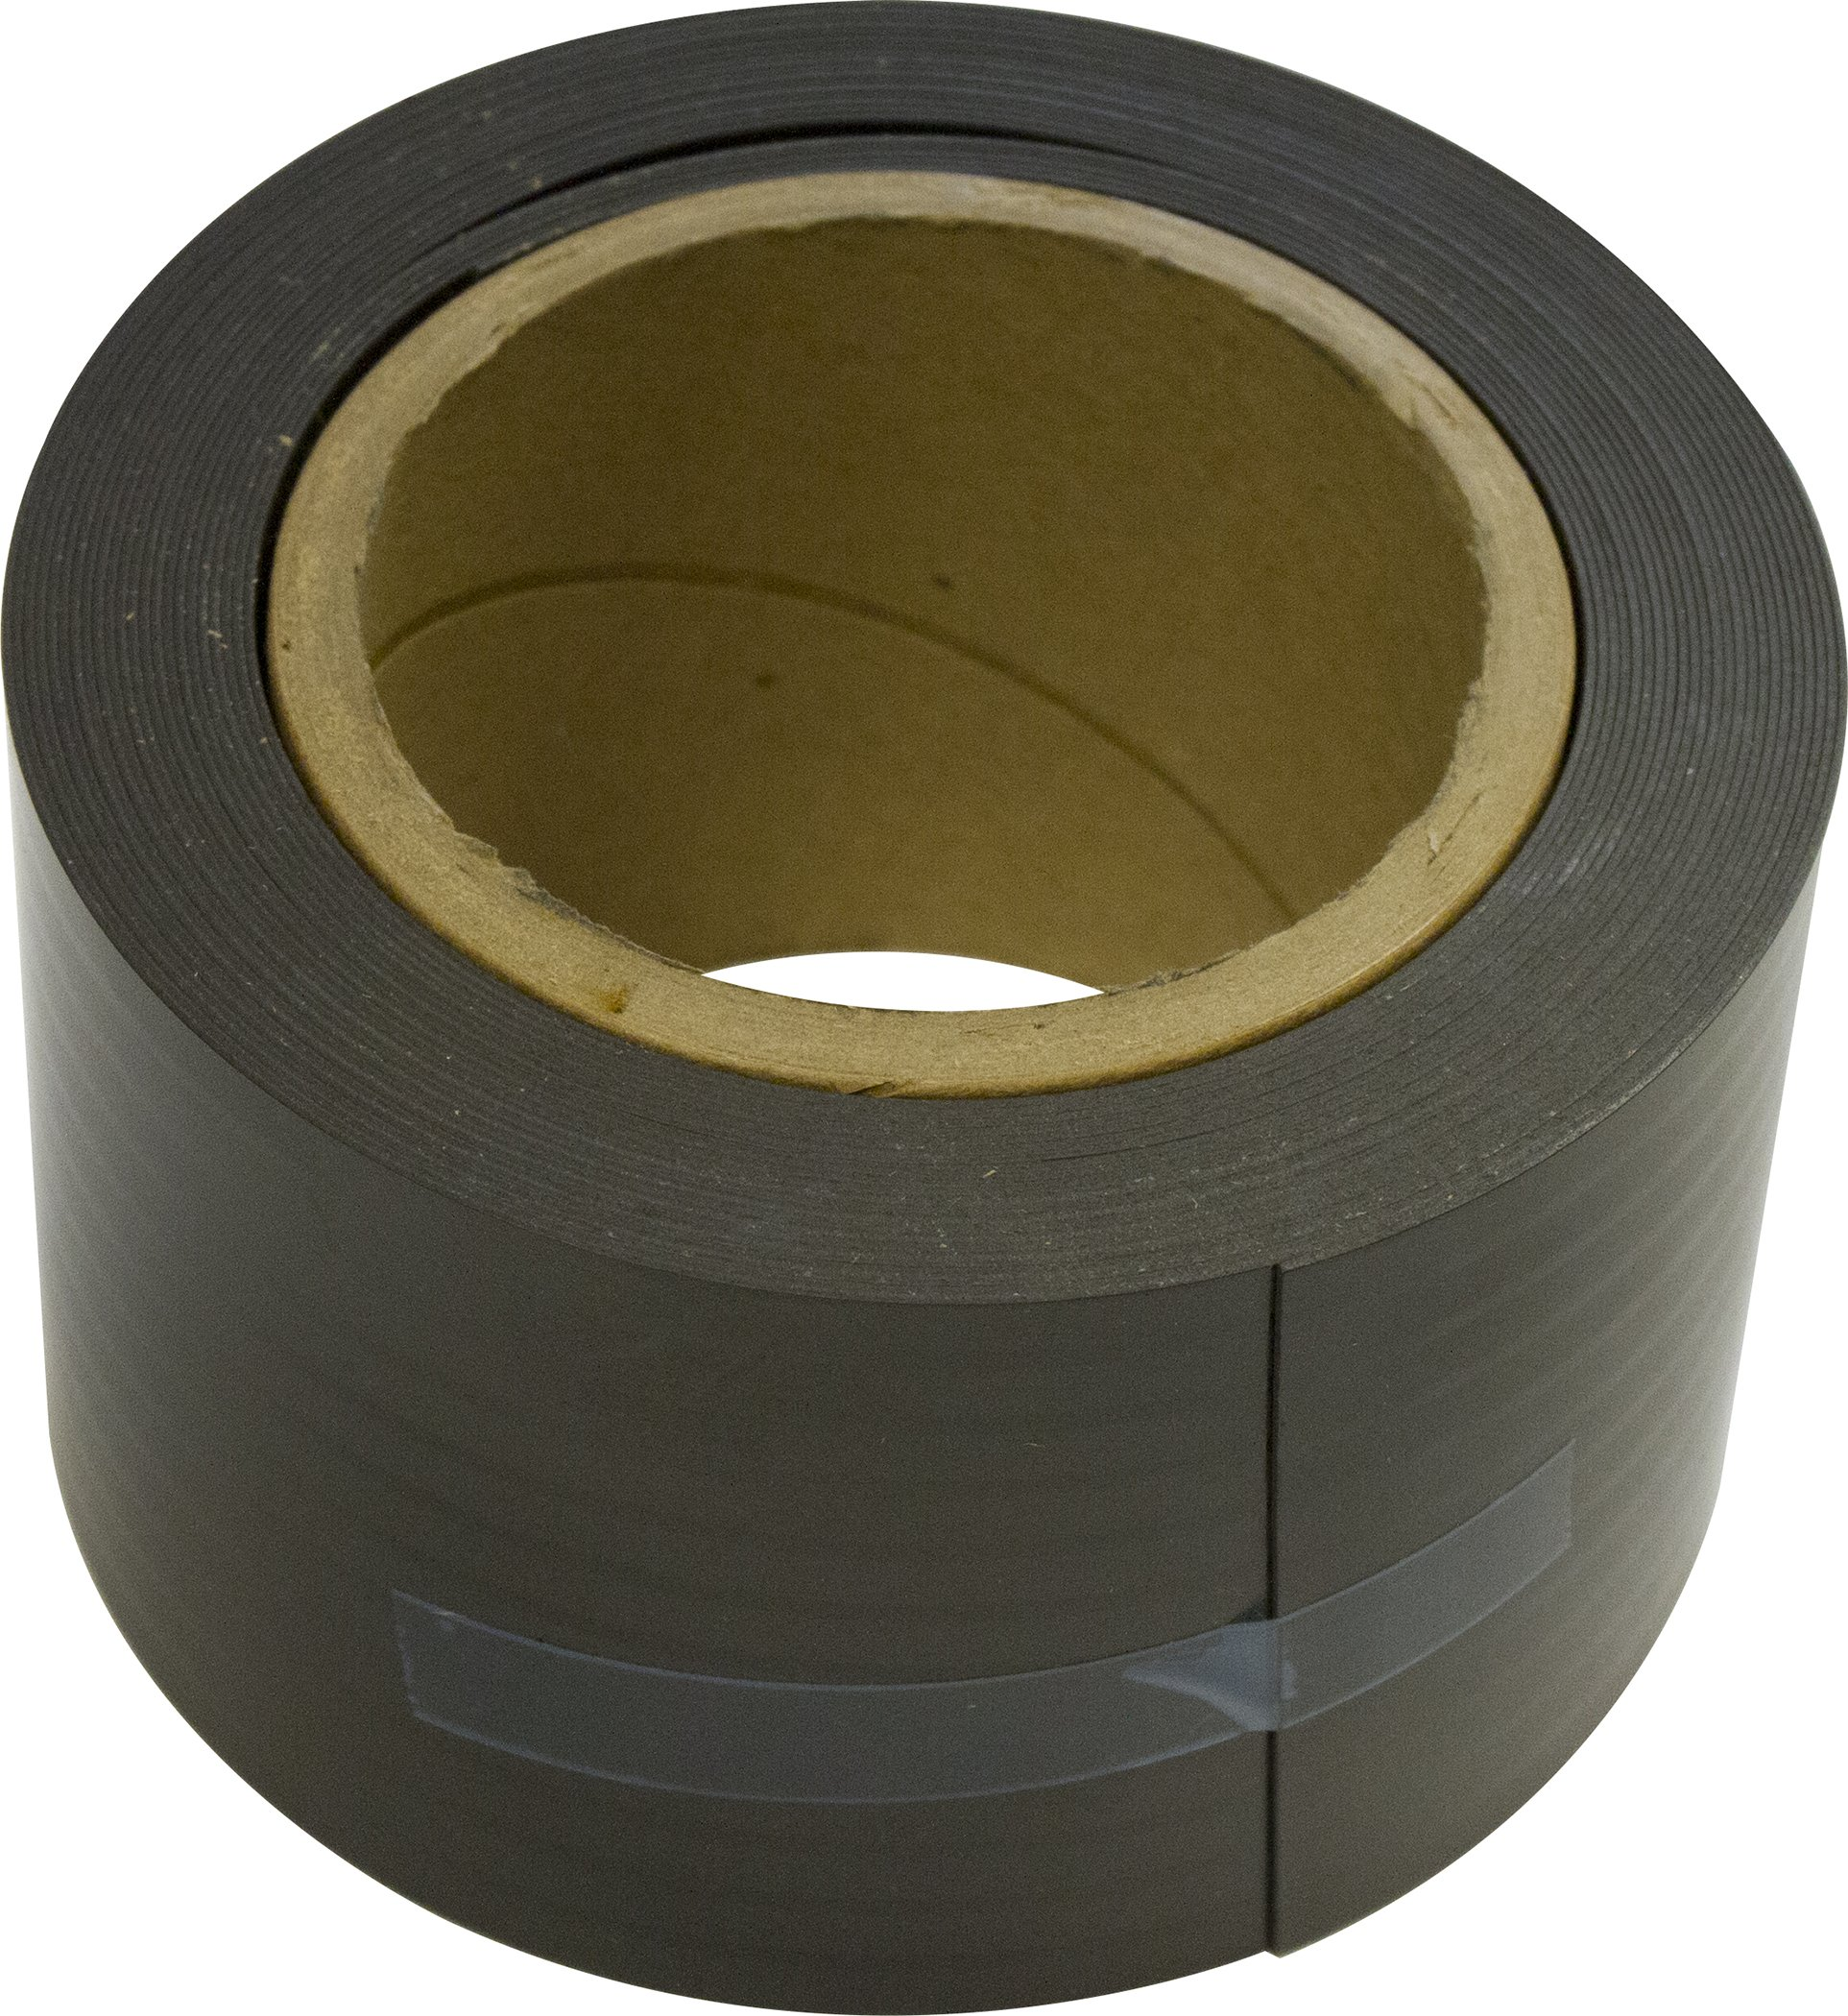 MAG-MATE MRN030X0300X025 Flexible Magnet Material without Adhesive, 0.030 x 3 x 25'